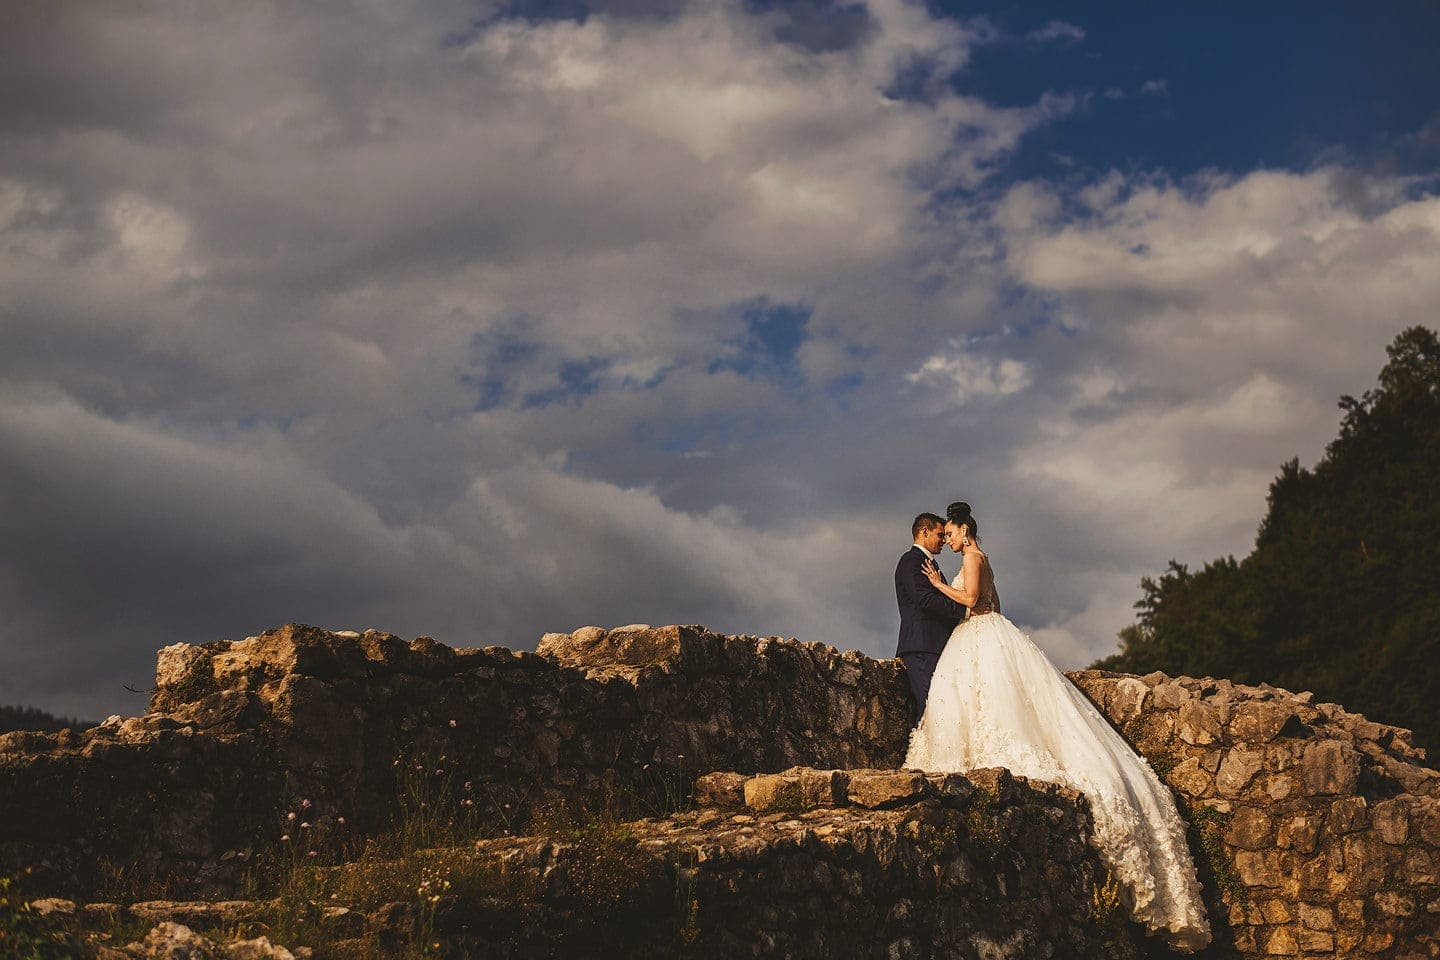 Best Of 2018 Wedding Photography by Aleks & Irena Kus 127